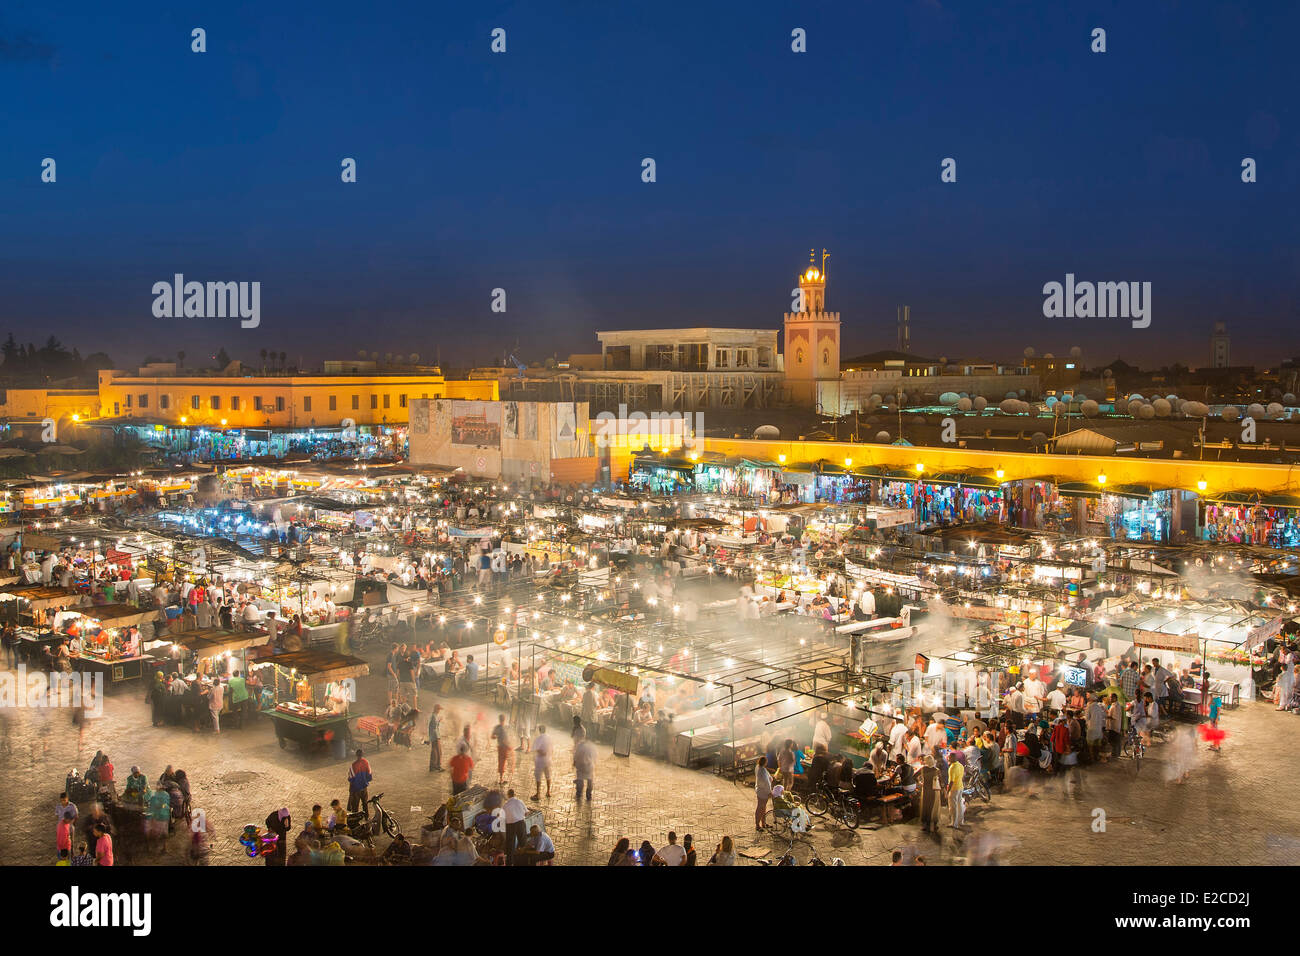 Morocco, High Atlas, Marrakesh, Imperial City, medina listed as World Heritage by UNESCO, Djemaa El Fna square Stock Photo